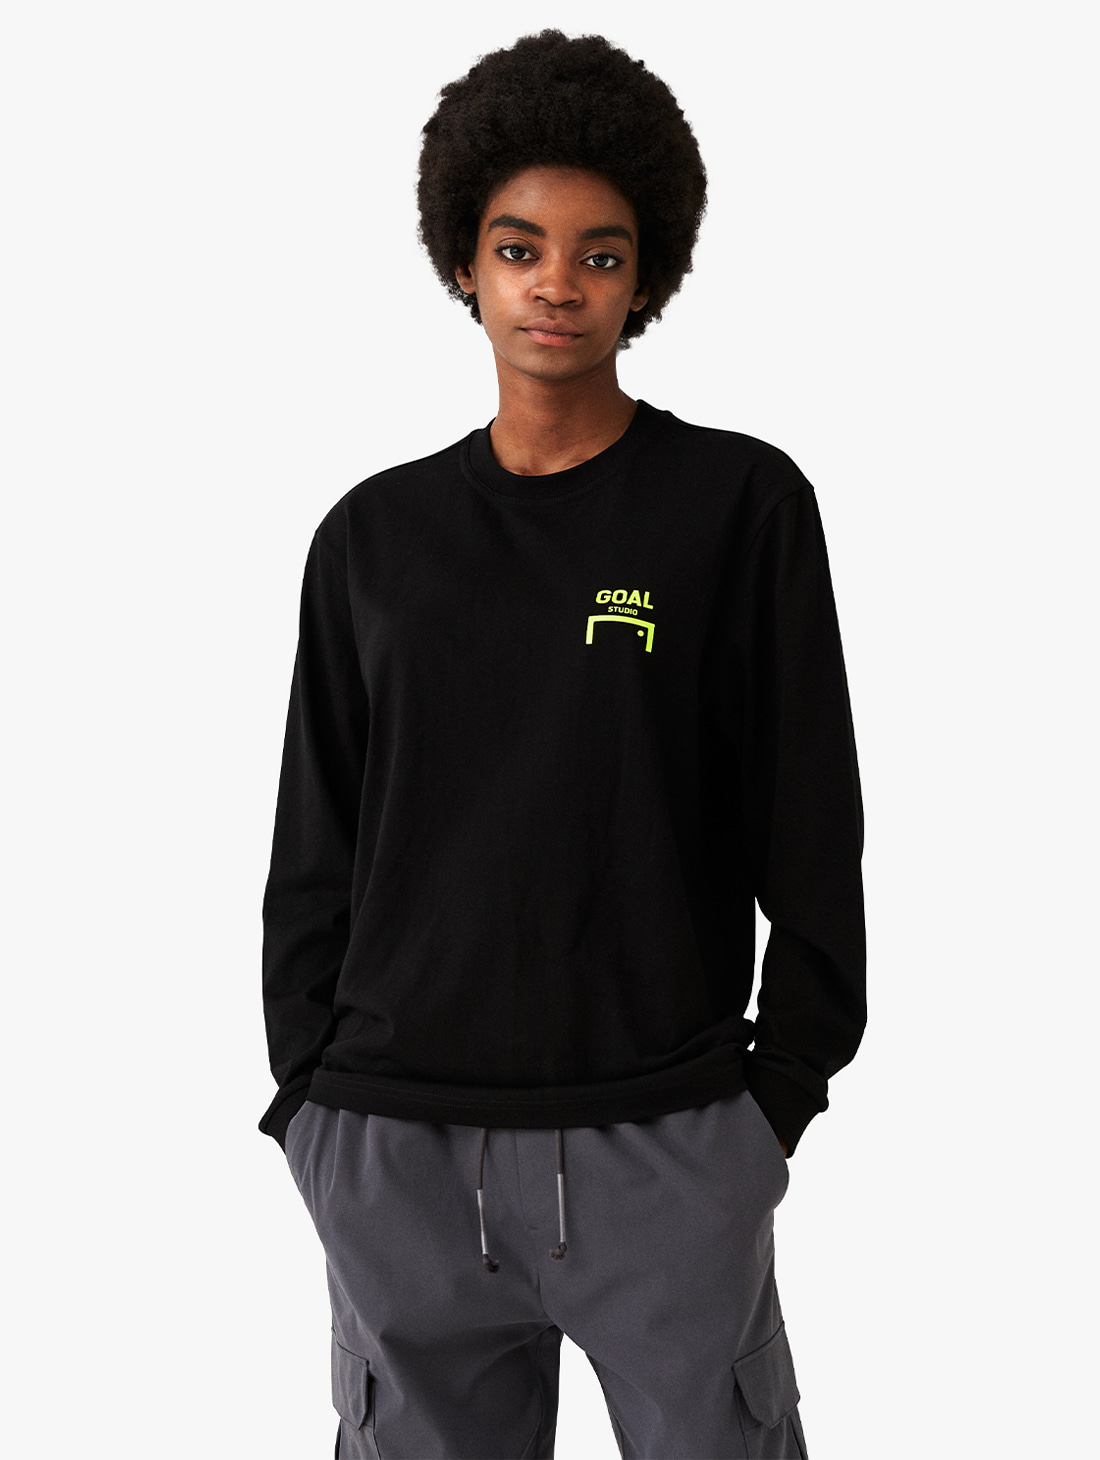 GOALSTUDIO LOGO LONG SLEEVE TEE (3 Colors)